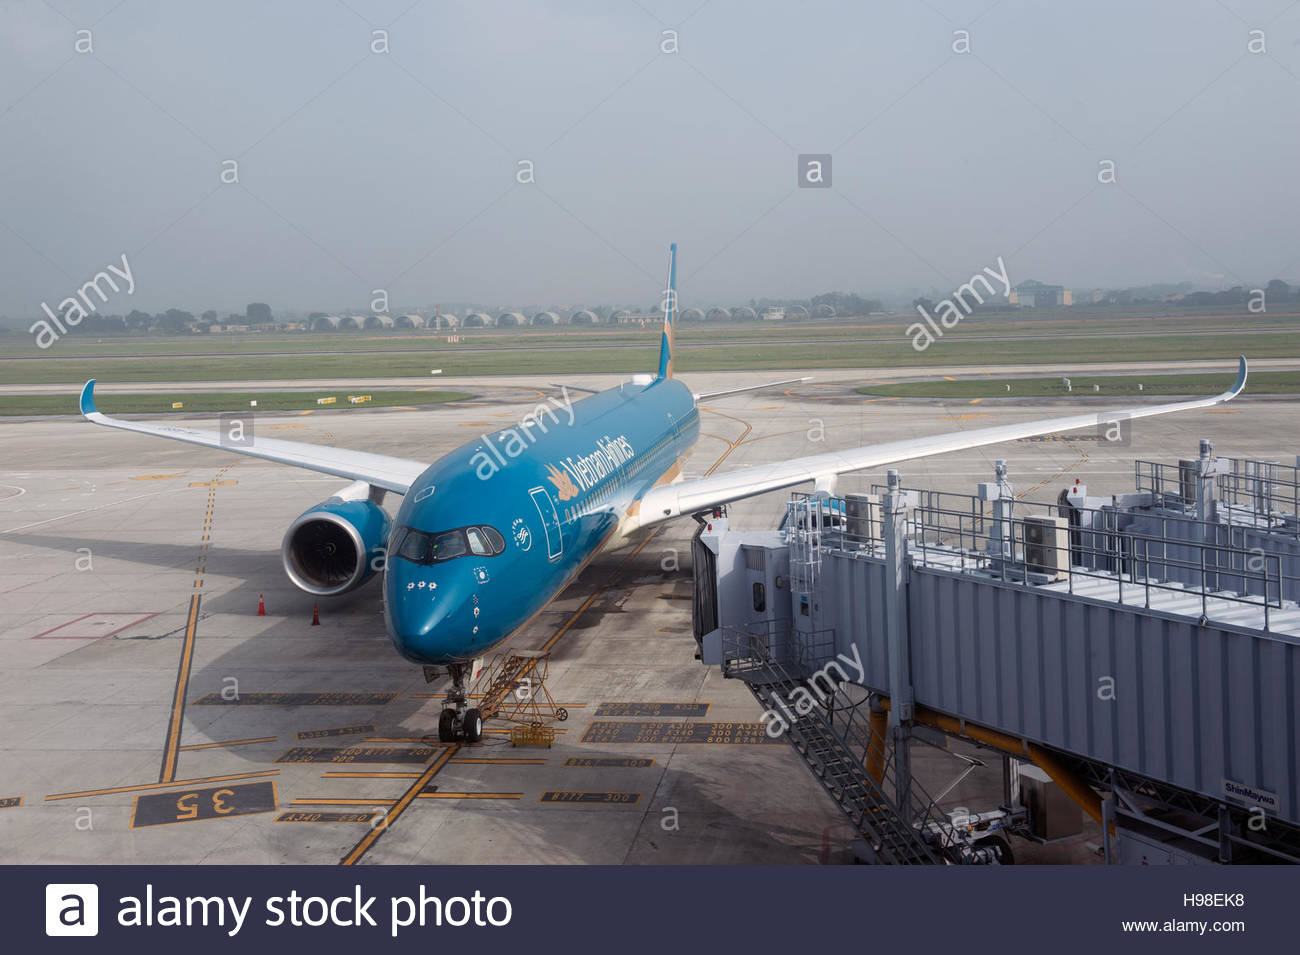 Ha Noi Vietnam. Vietnam Airlines Airbus A350 Aircraft on the apron at Nội Bài International Airport - Stock Image